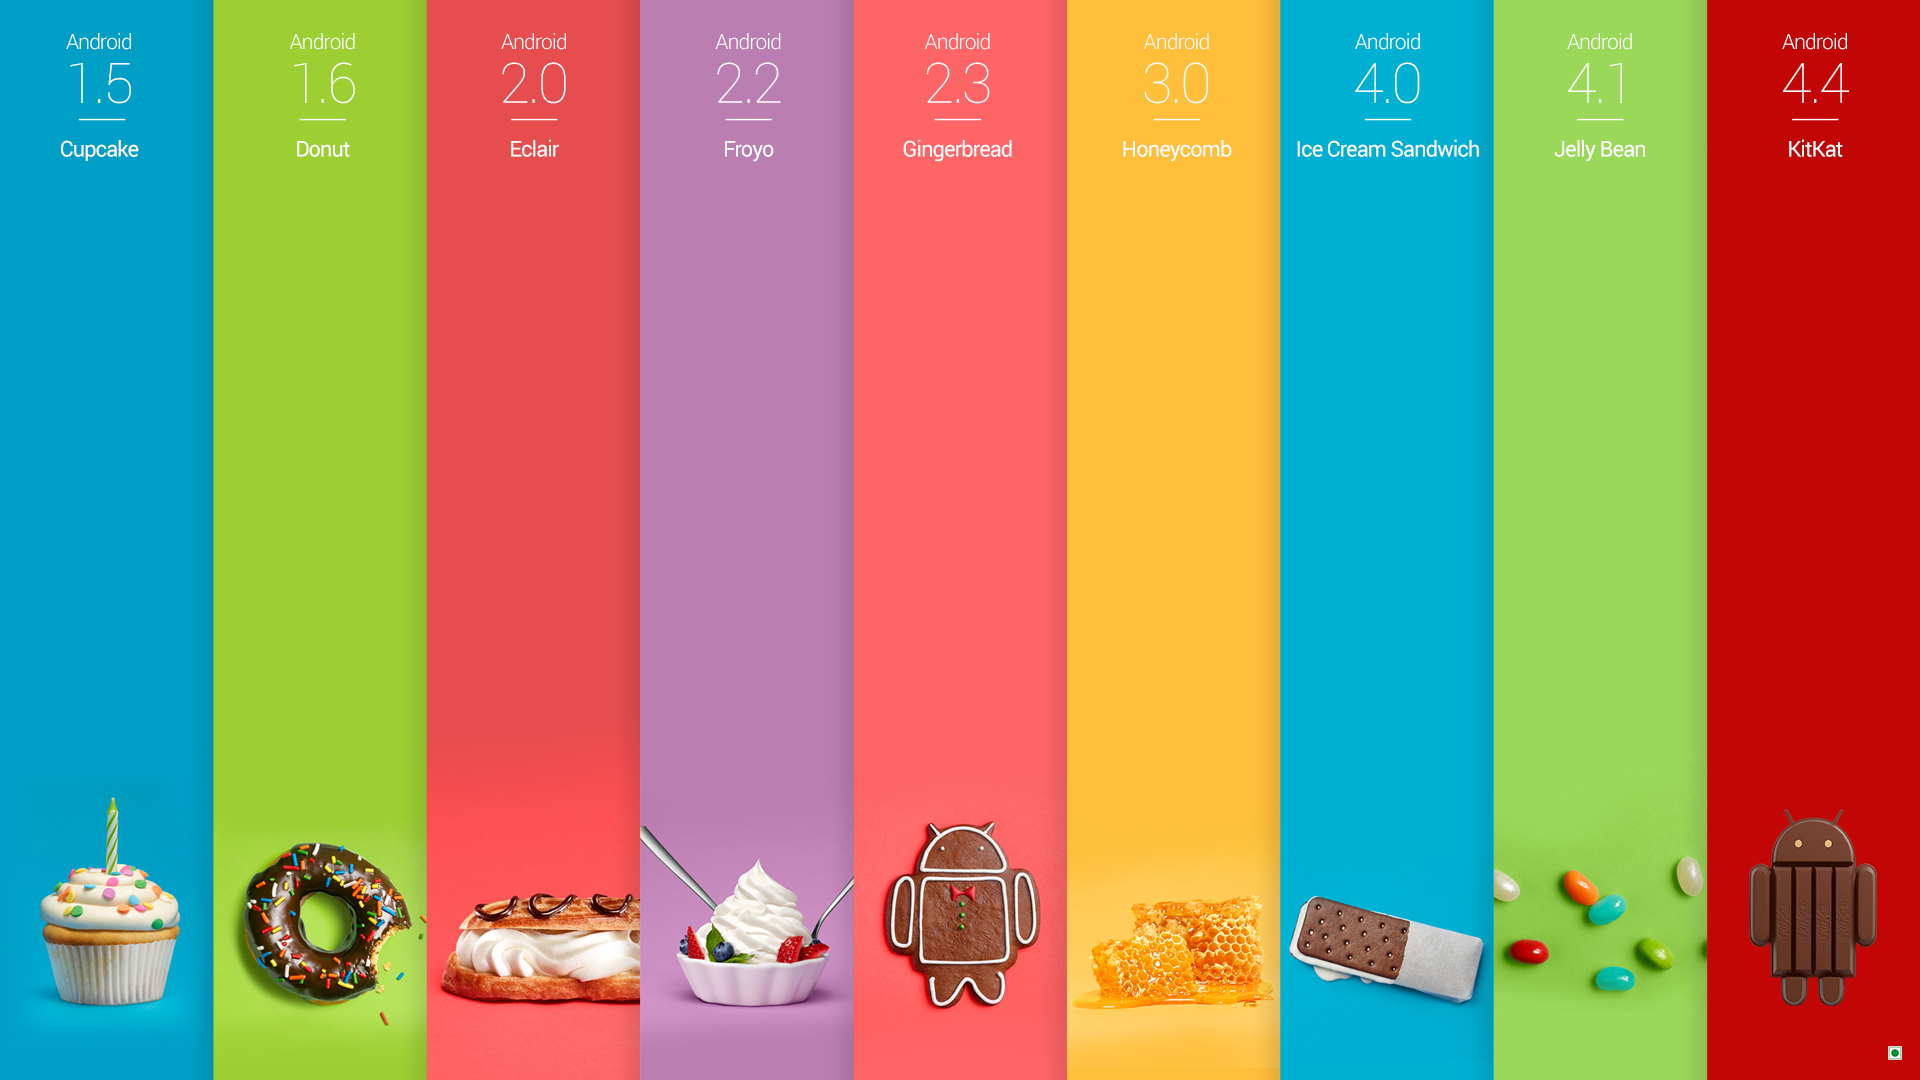 Android 44 kitkat wallpapers method of tried kitkatwall3 voltagebd Choice Image